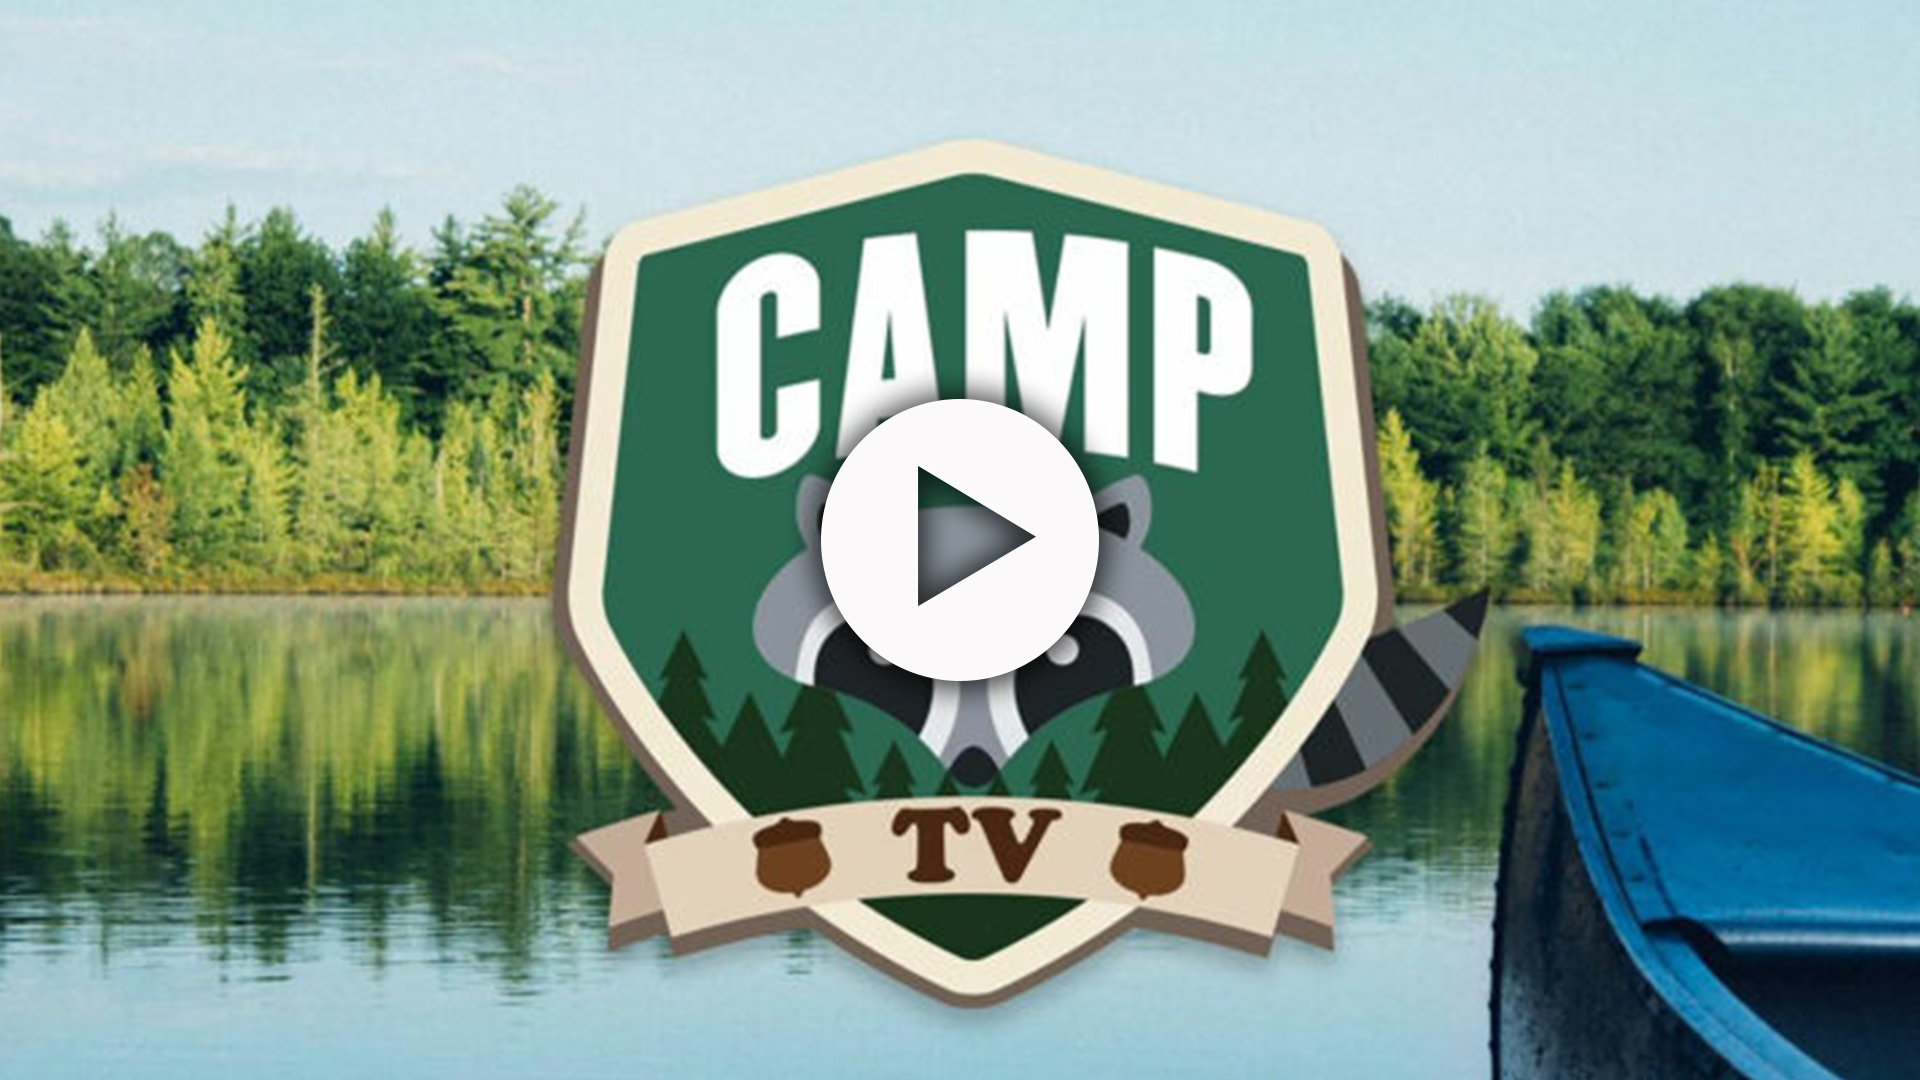 The Camp TV logo superimposed over a photo of trees and the front of a canoe.